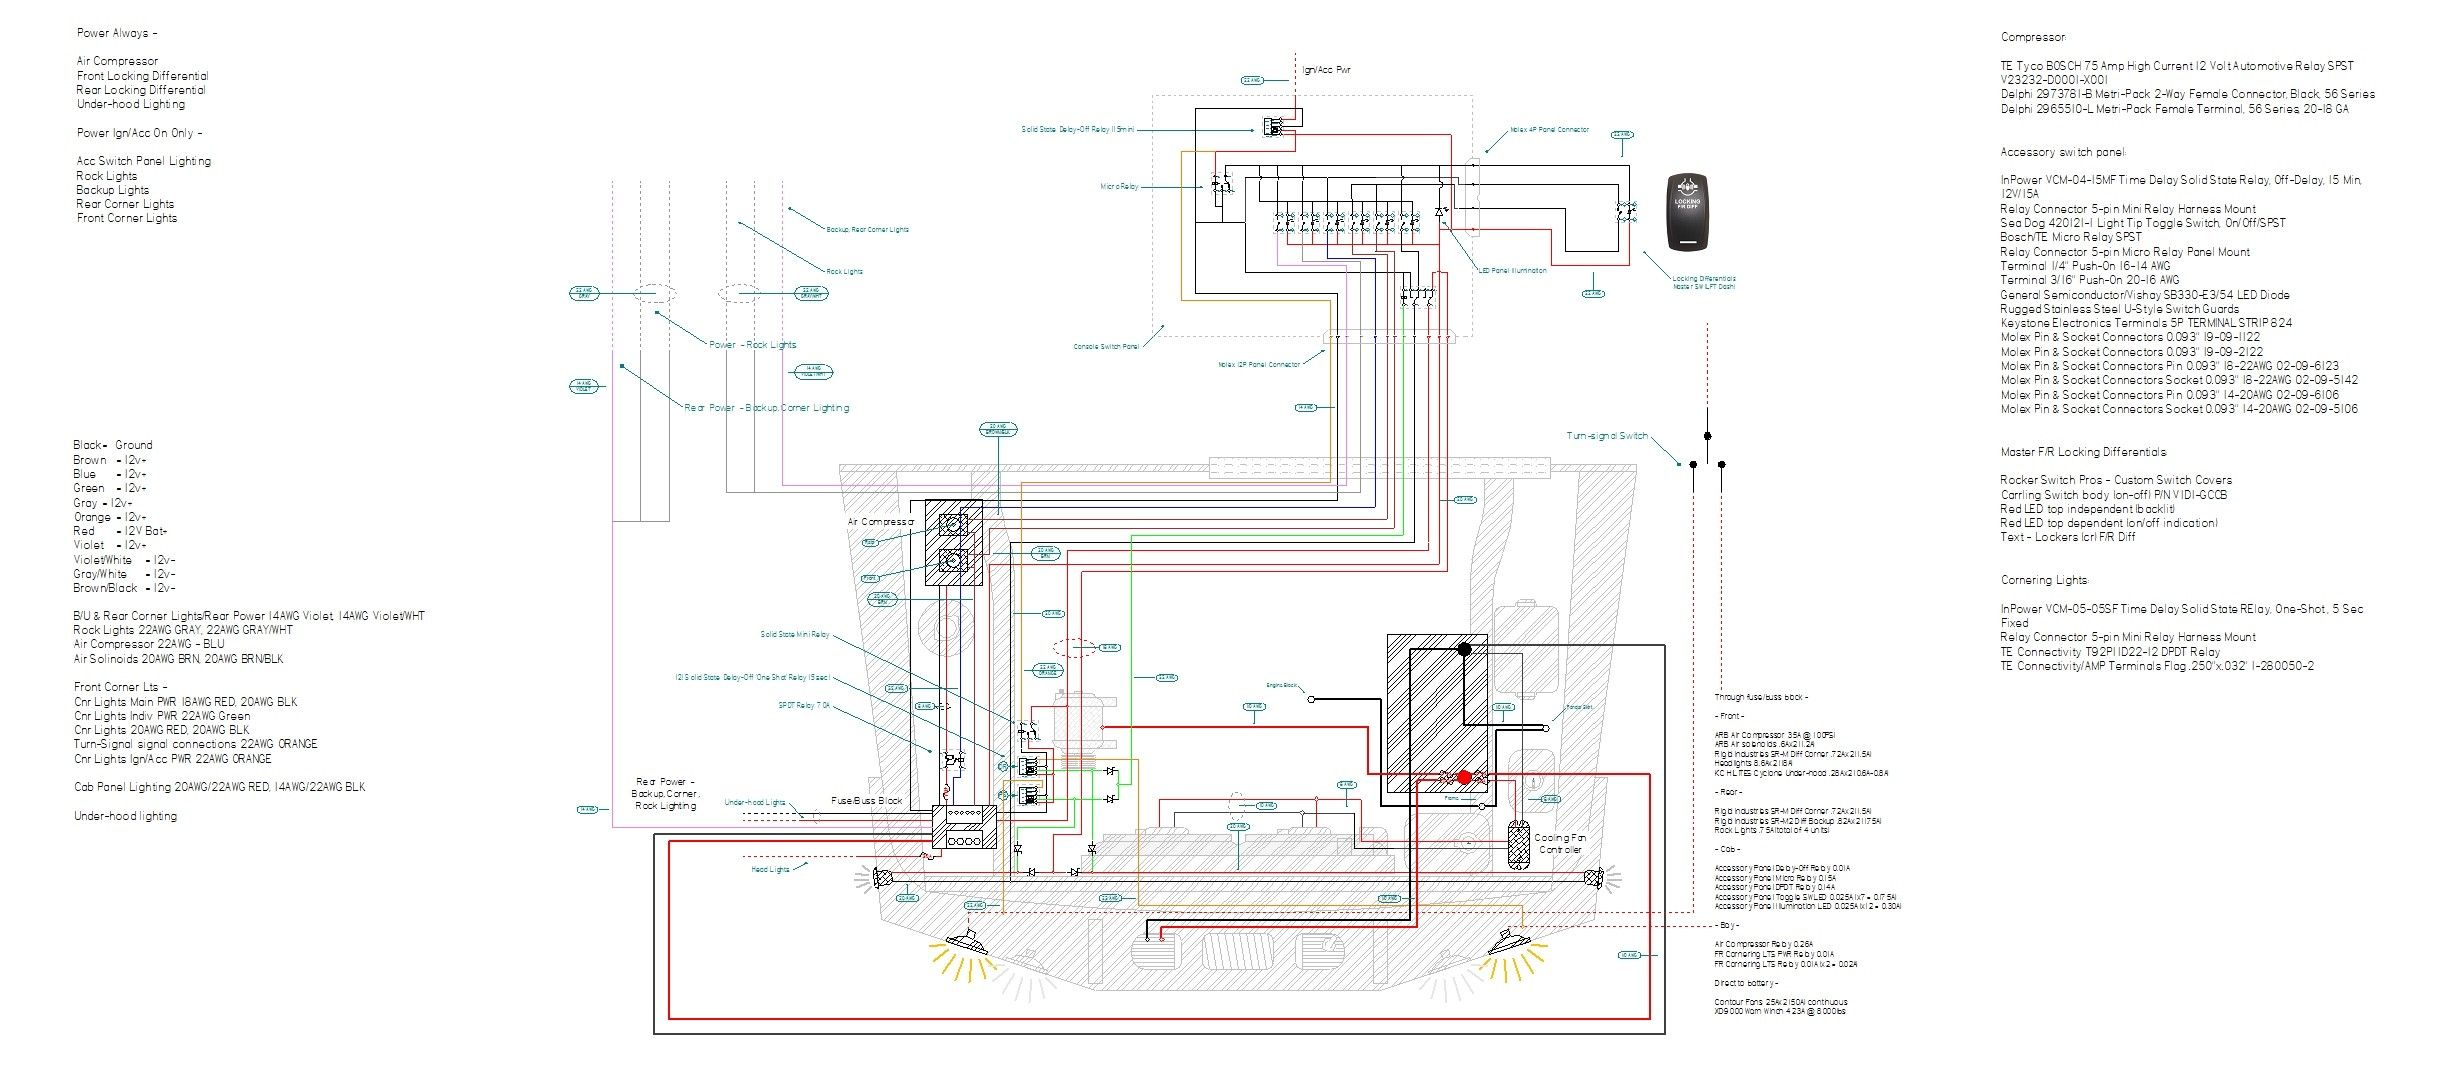 44040 Jeep 440 40tj Wiring Schematic   Fusebox and Wiring Diagram ...